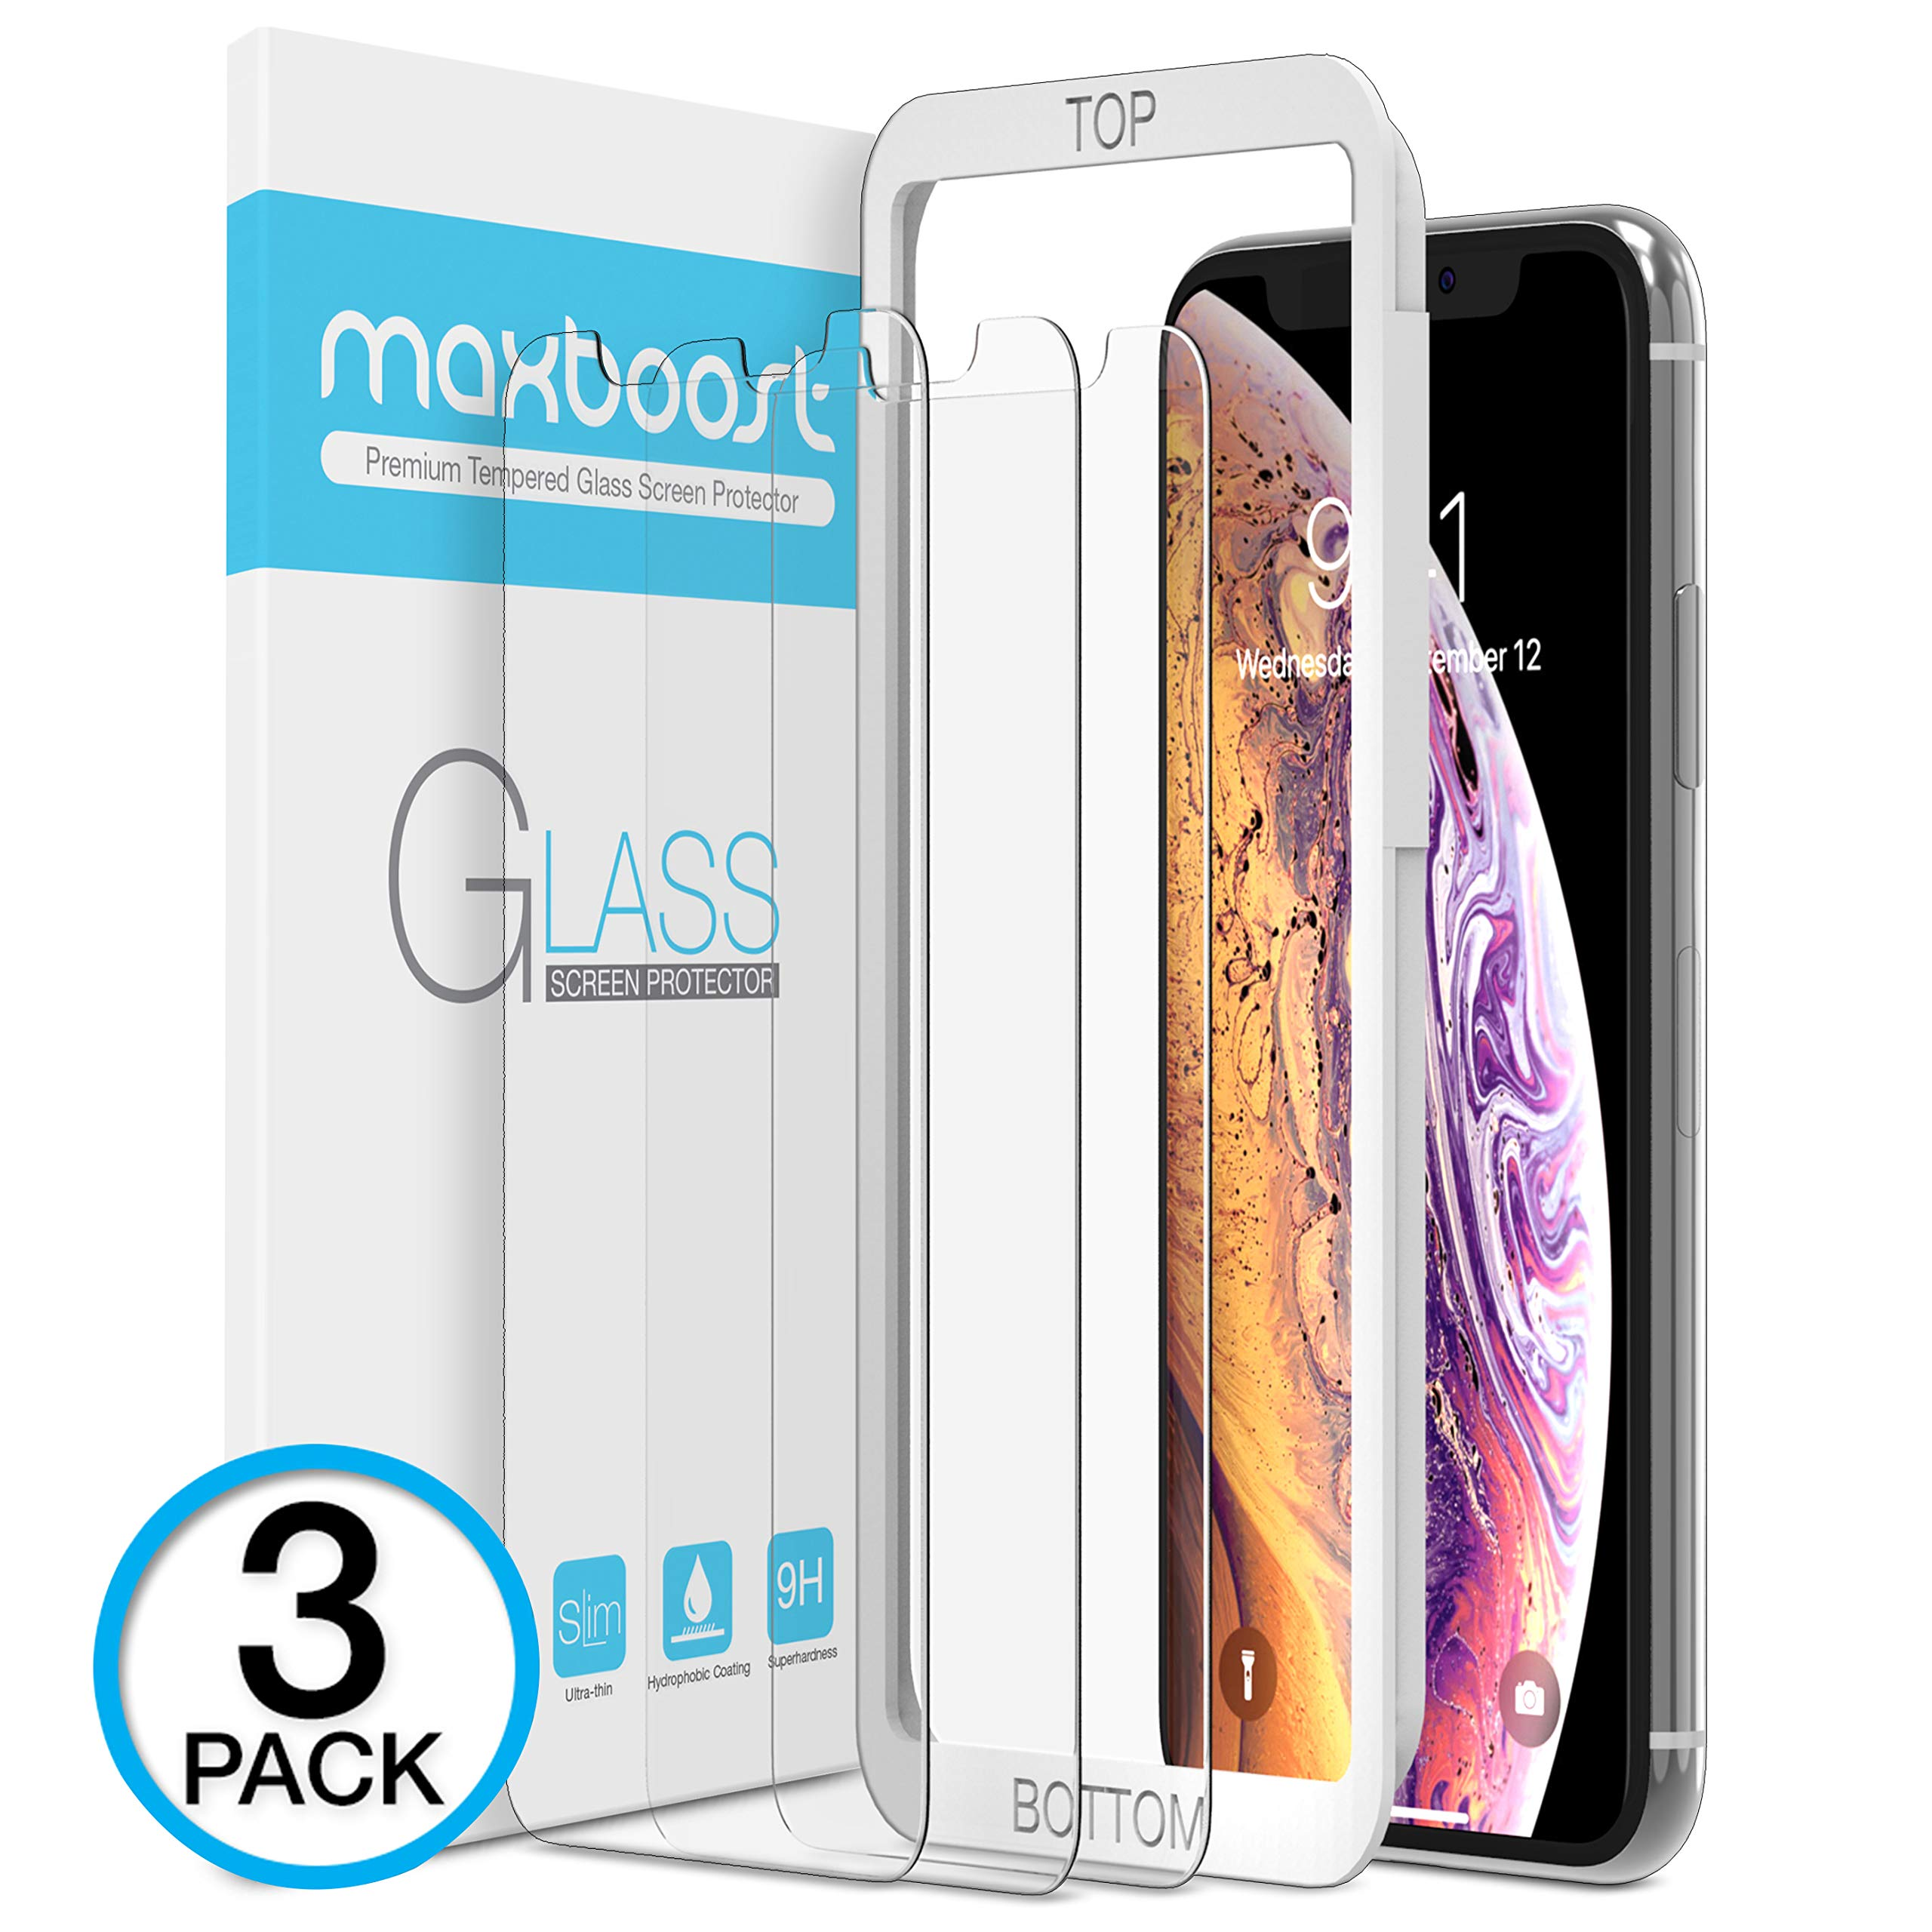 Maxboost Screen Protector for Apple iPhone XS Max (6.5 inch) (Clear, 3 Packs) 0.25mm iPhone XS Max Tempered Glass Screen Protector w/ Advanced Clarity [3D Touch] Work with most Case 99% Touch Sensitiv by Maxboost